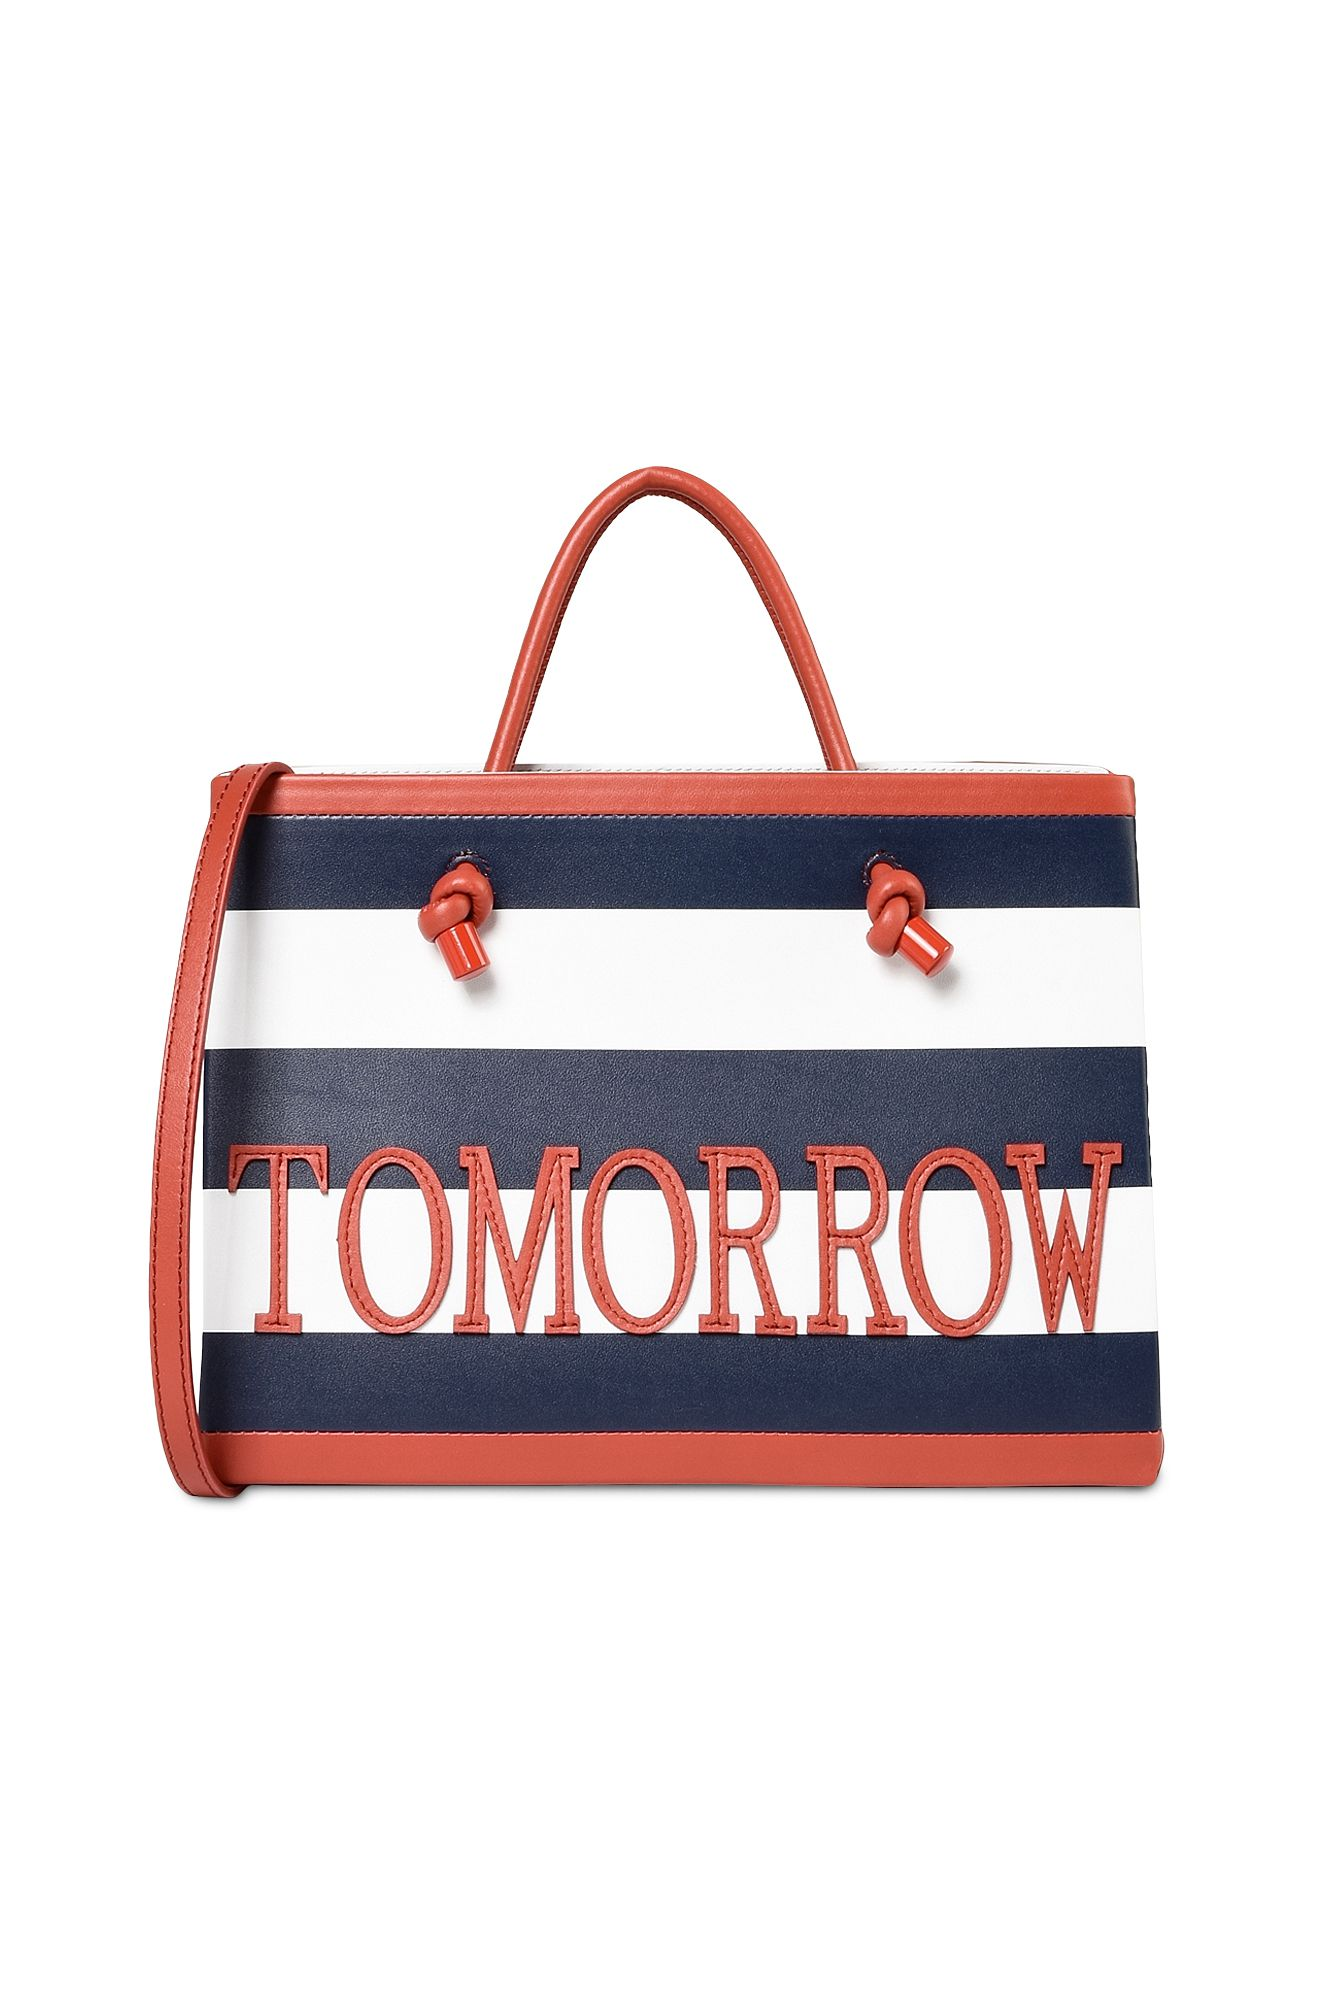 Tomorrow shopping bag